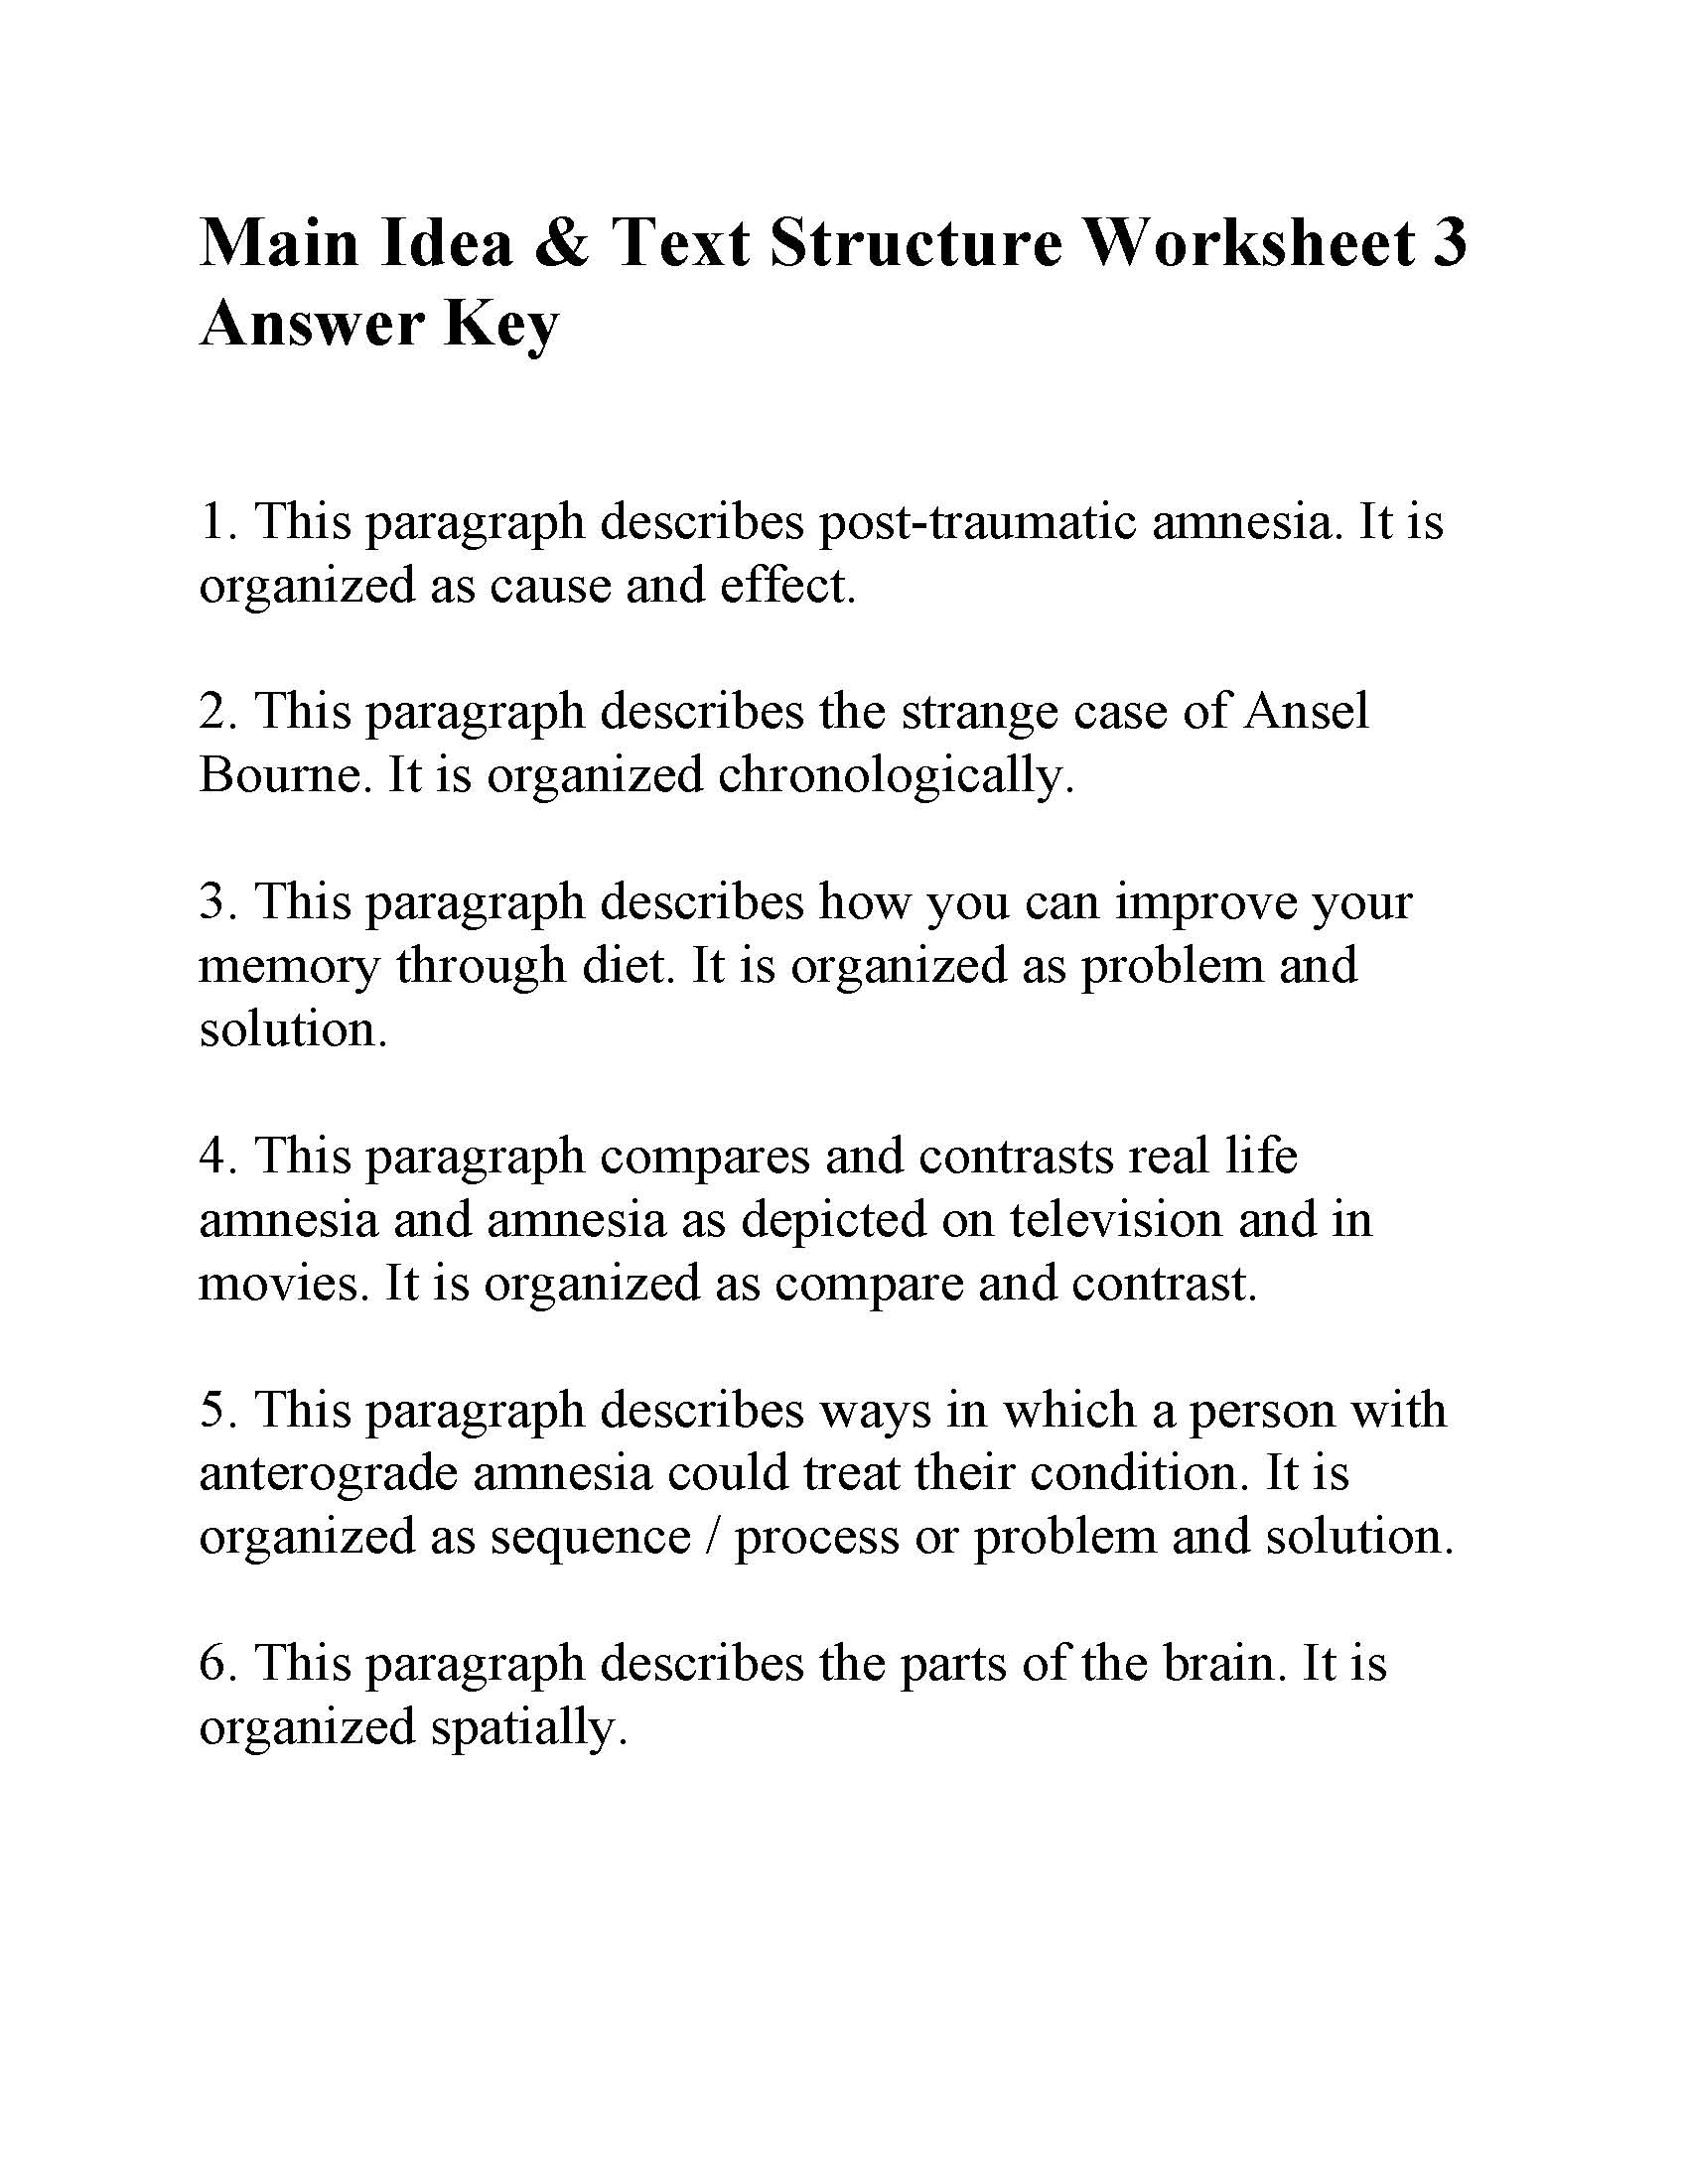 This is the answer key for the Main Idea and Text Structure Worksheet 3.